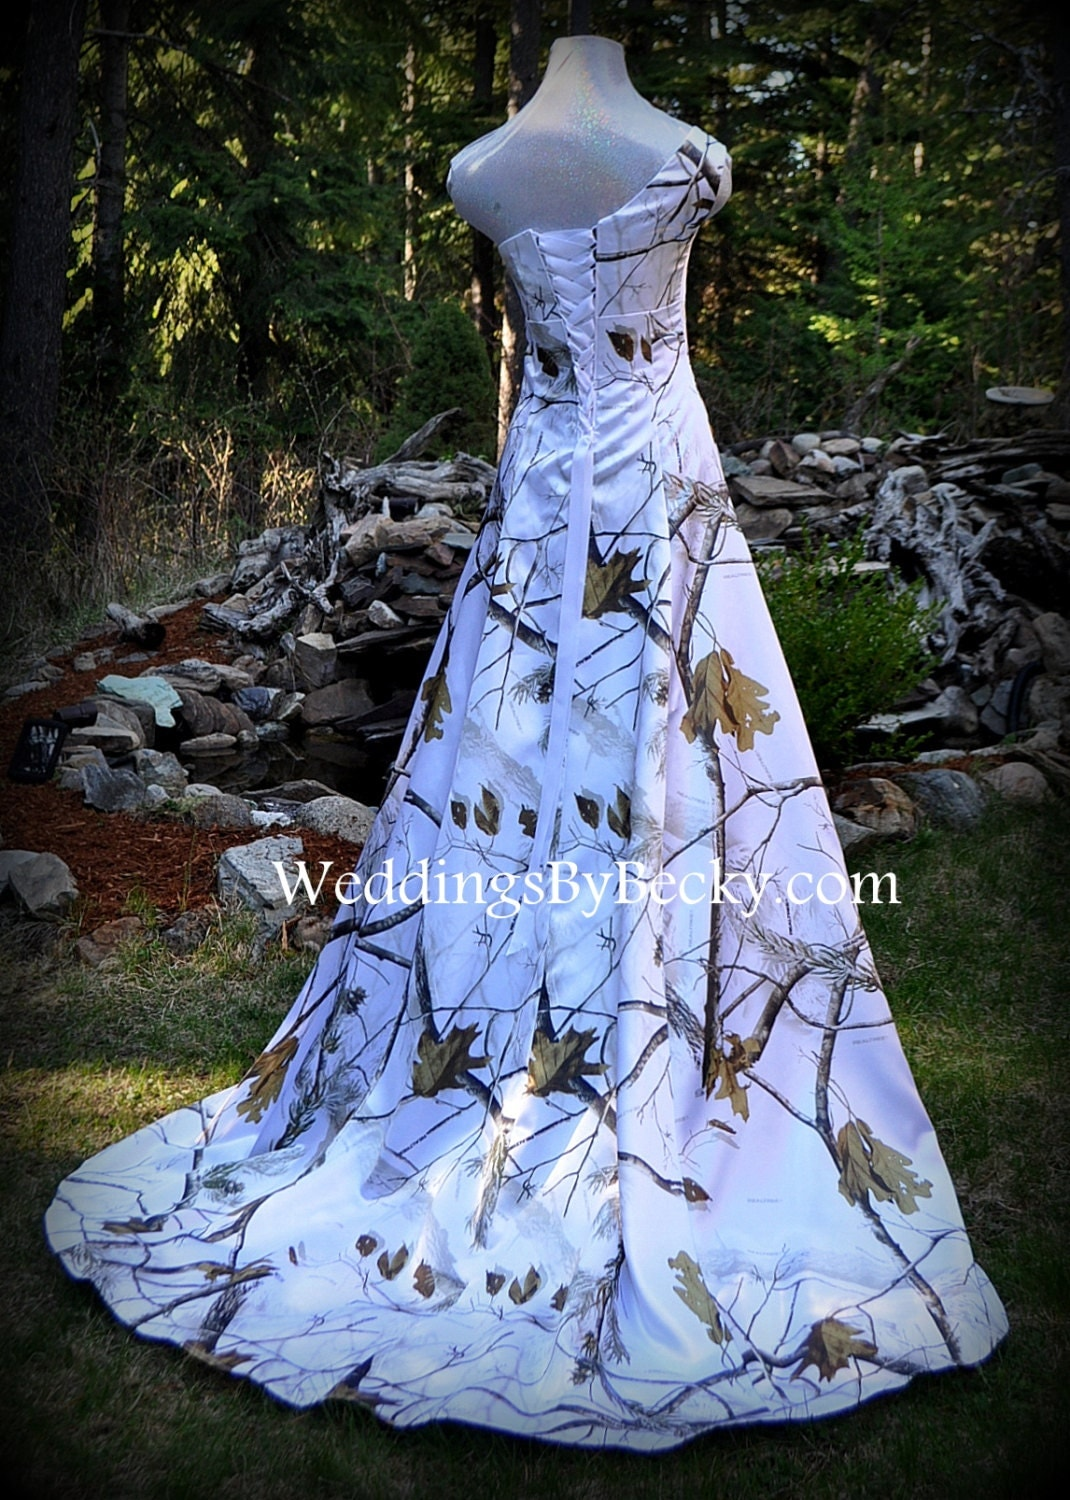 Camouflage and camo-themed Bridal and Wedding dreseses.